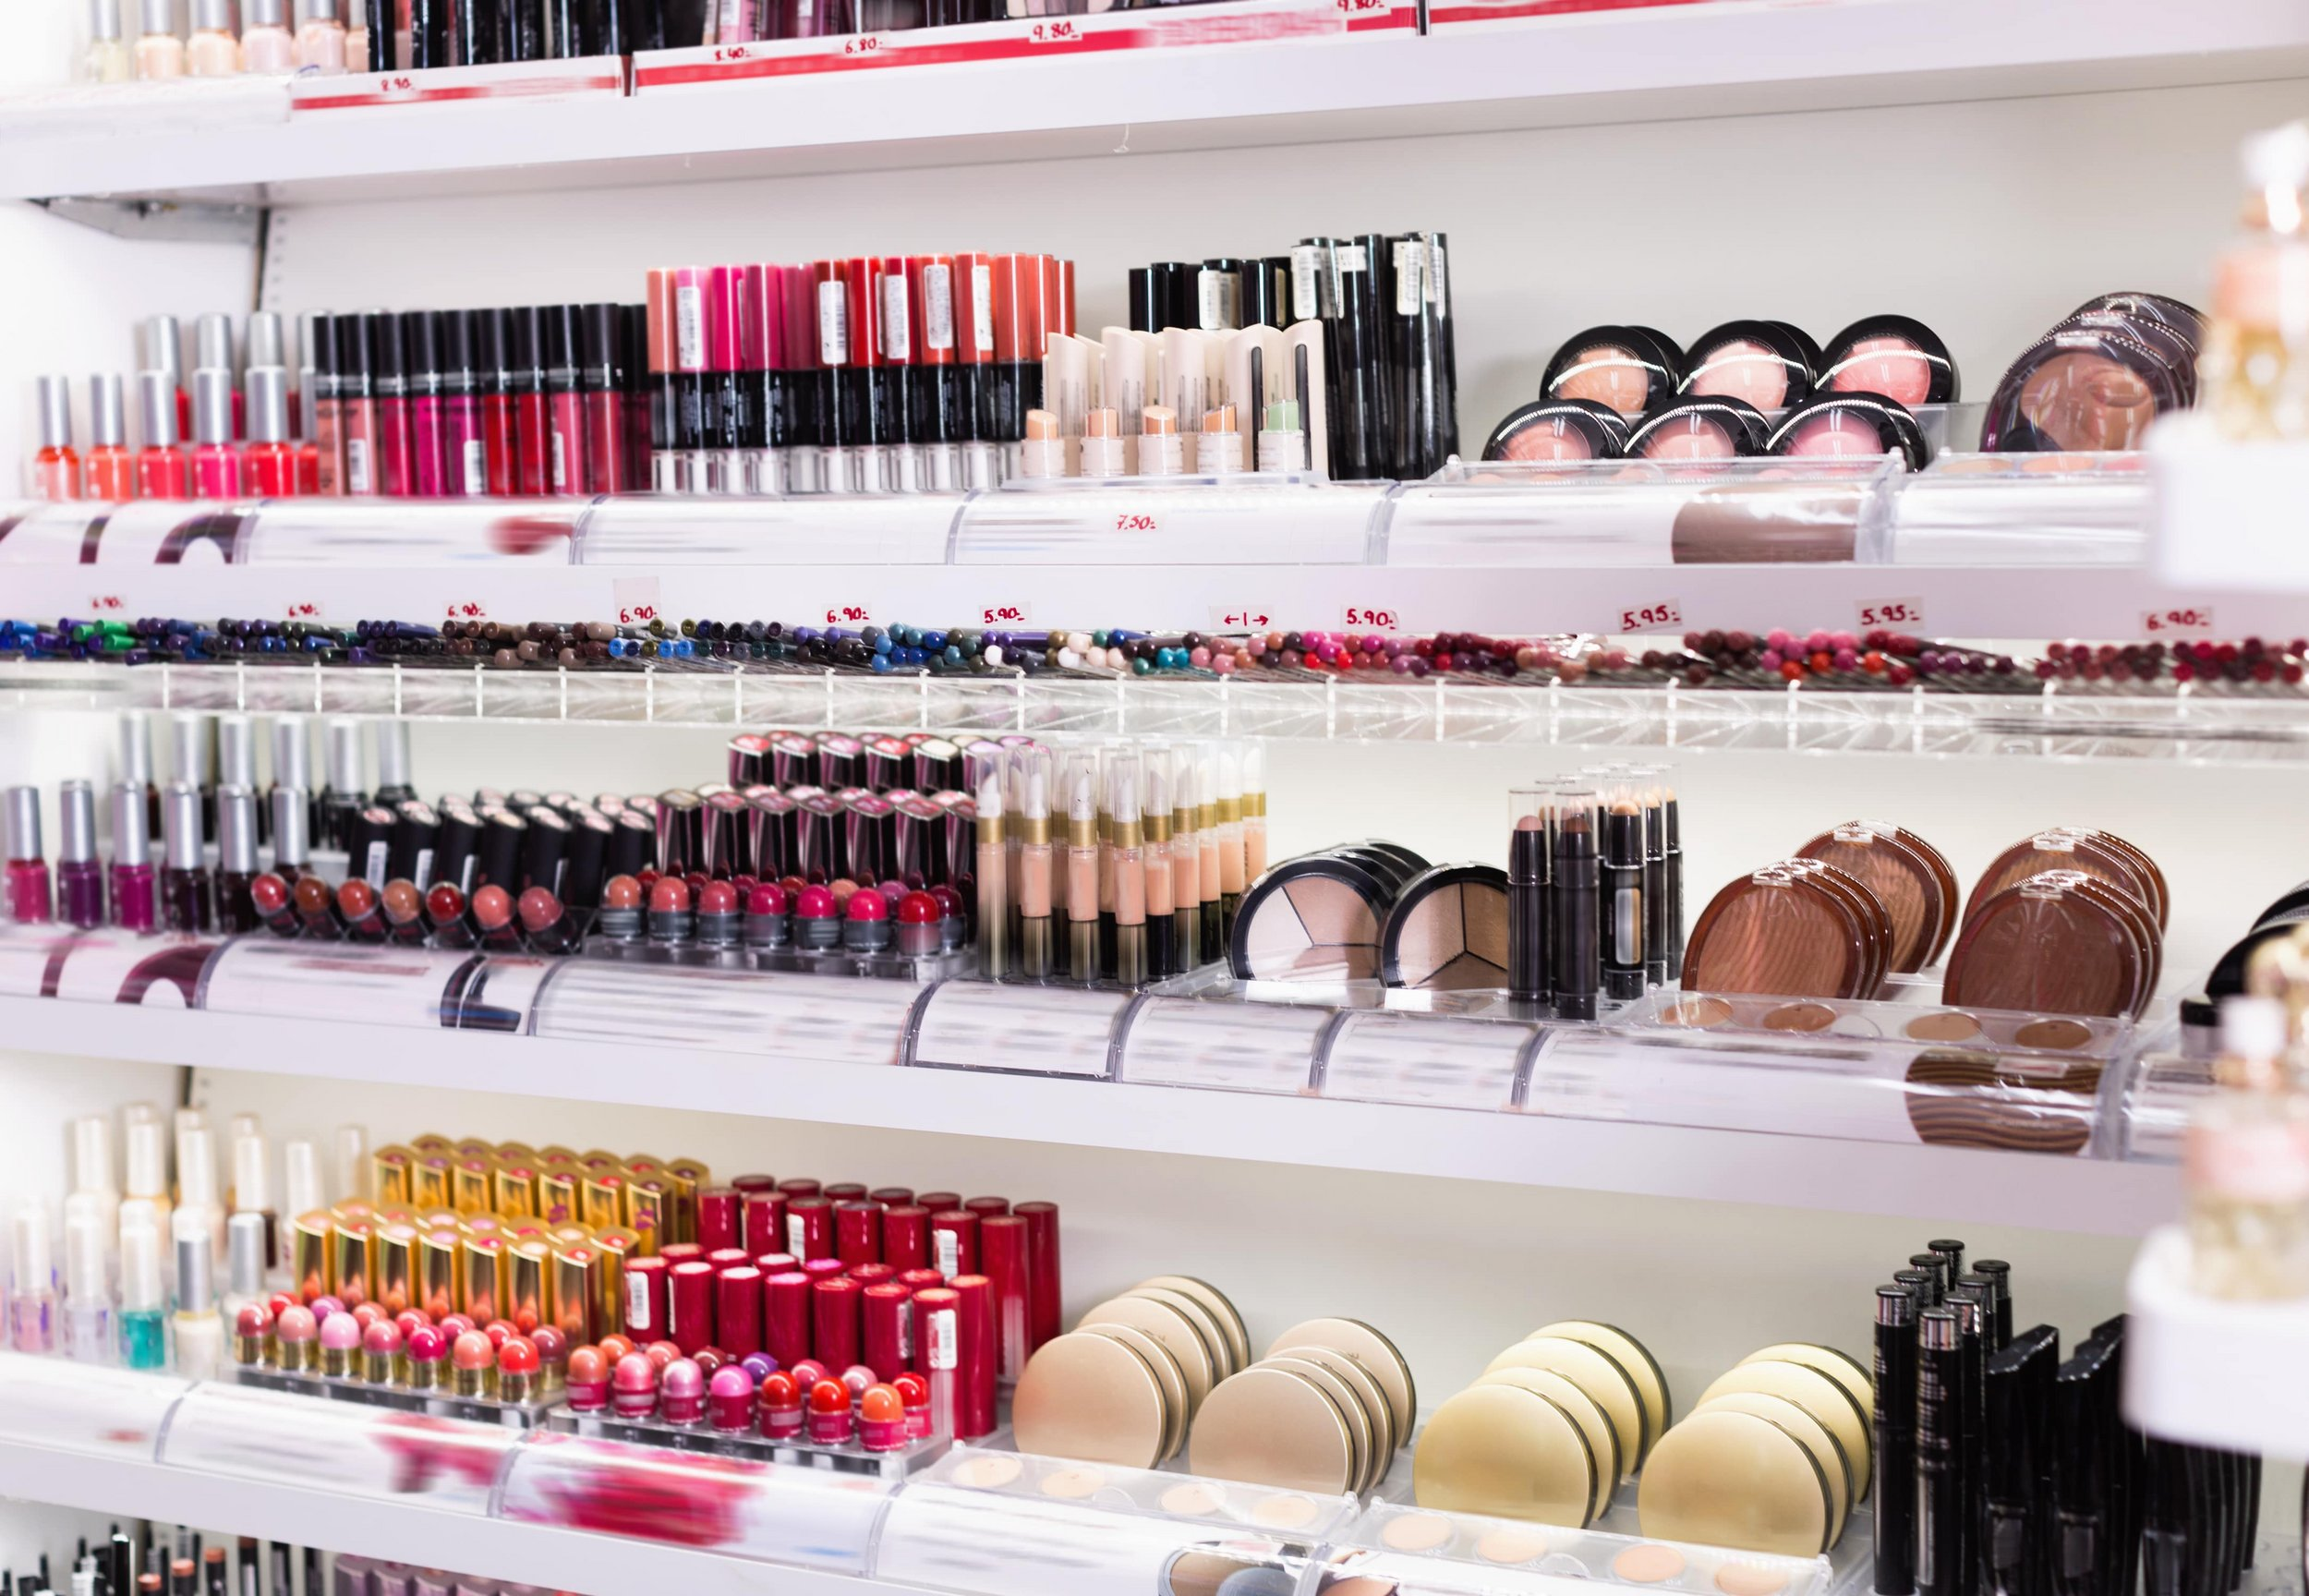 Large cosmetics collection